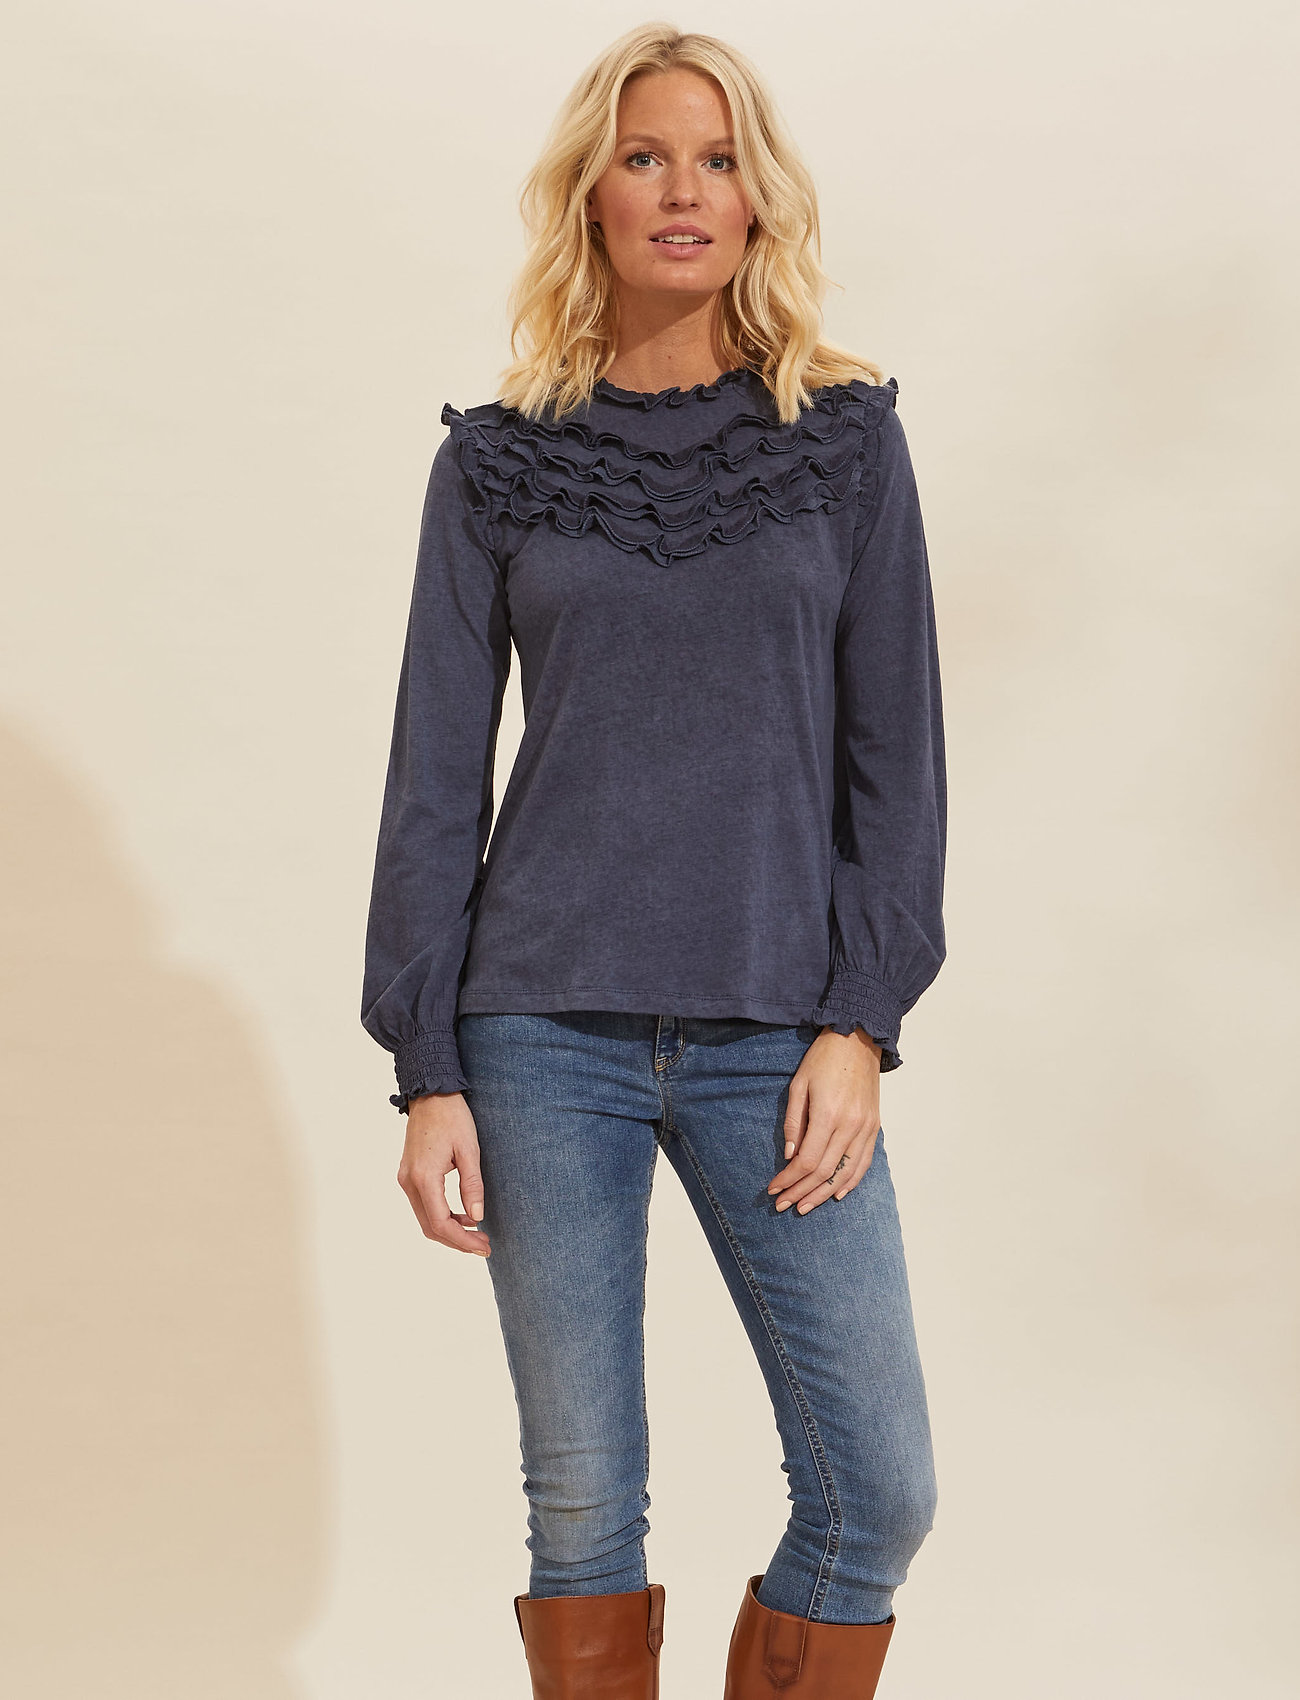 ODD MOLLY - Malou Top - langærmede bluser - dark blue - 0